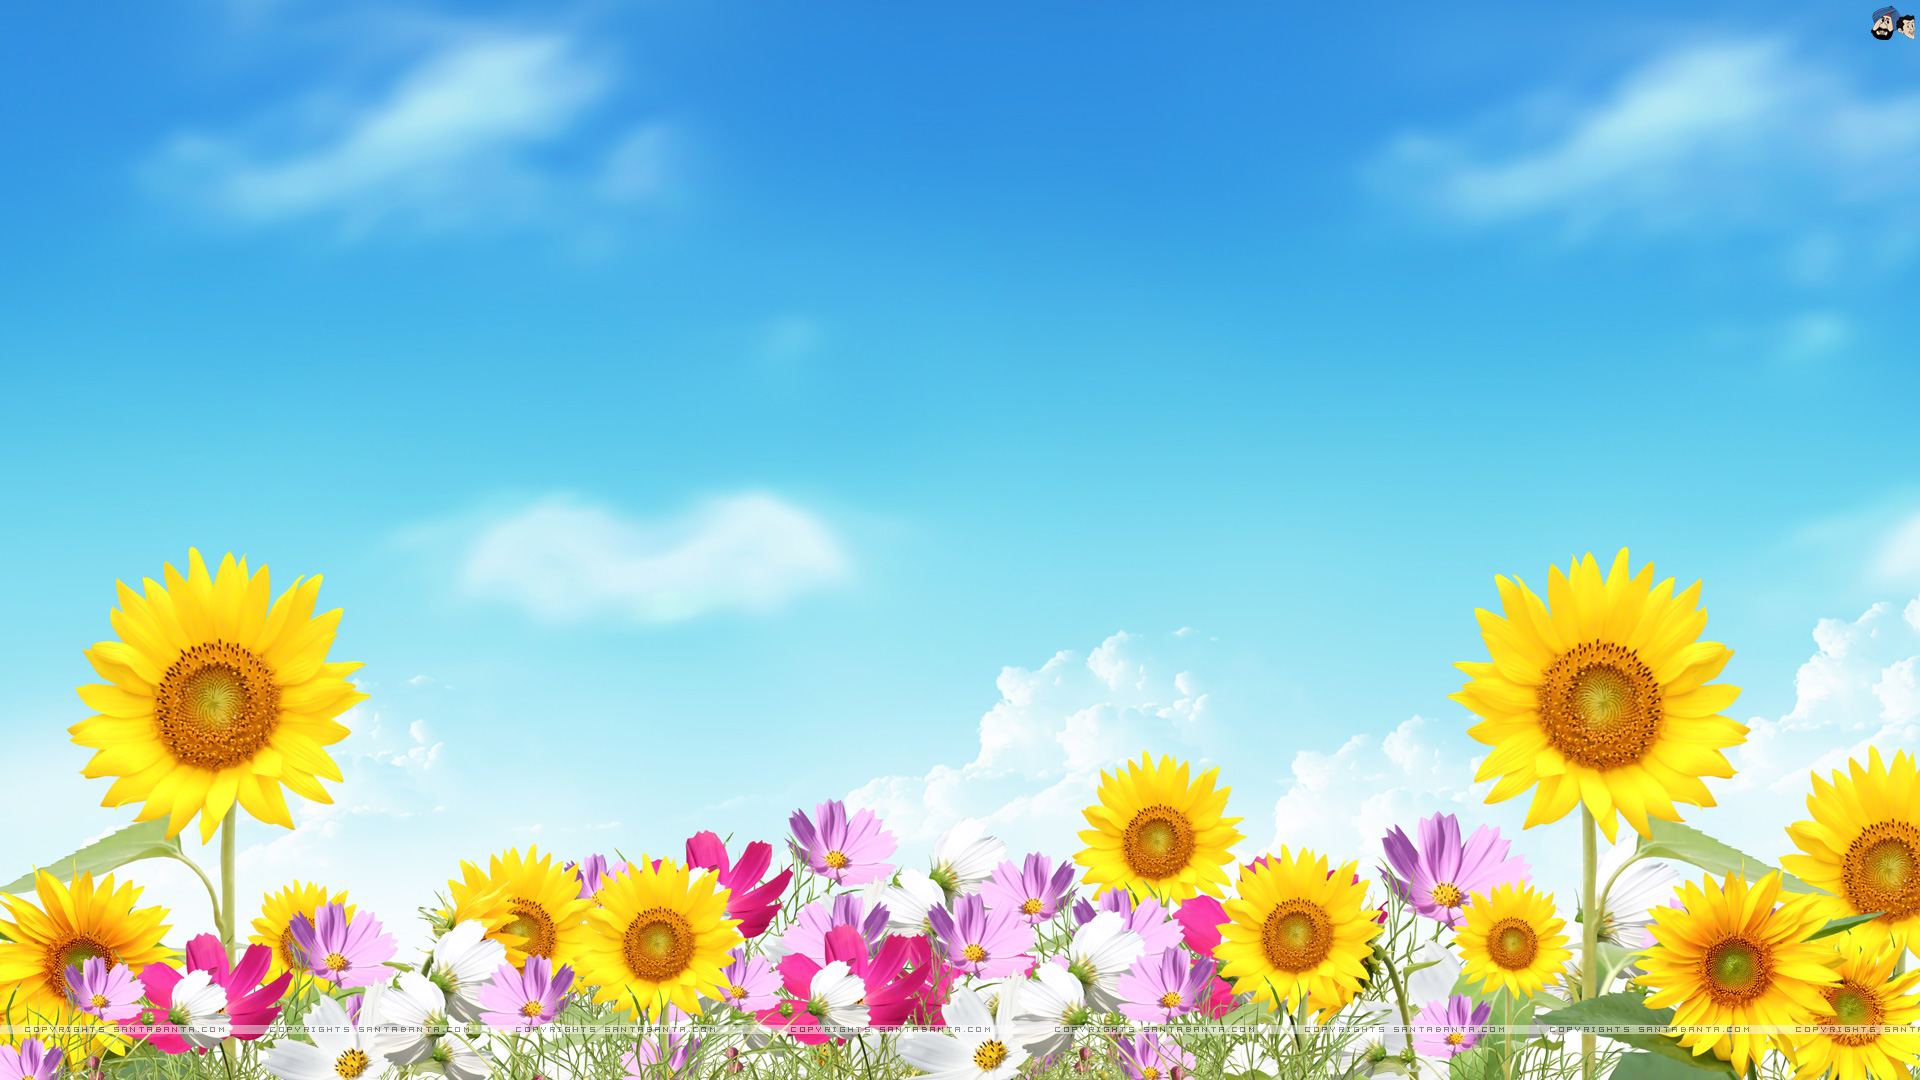 Summer Flower Picture HD Wallpaper   Summer Flower Picture Wallpaper